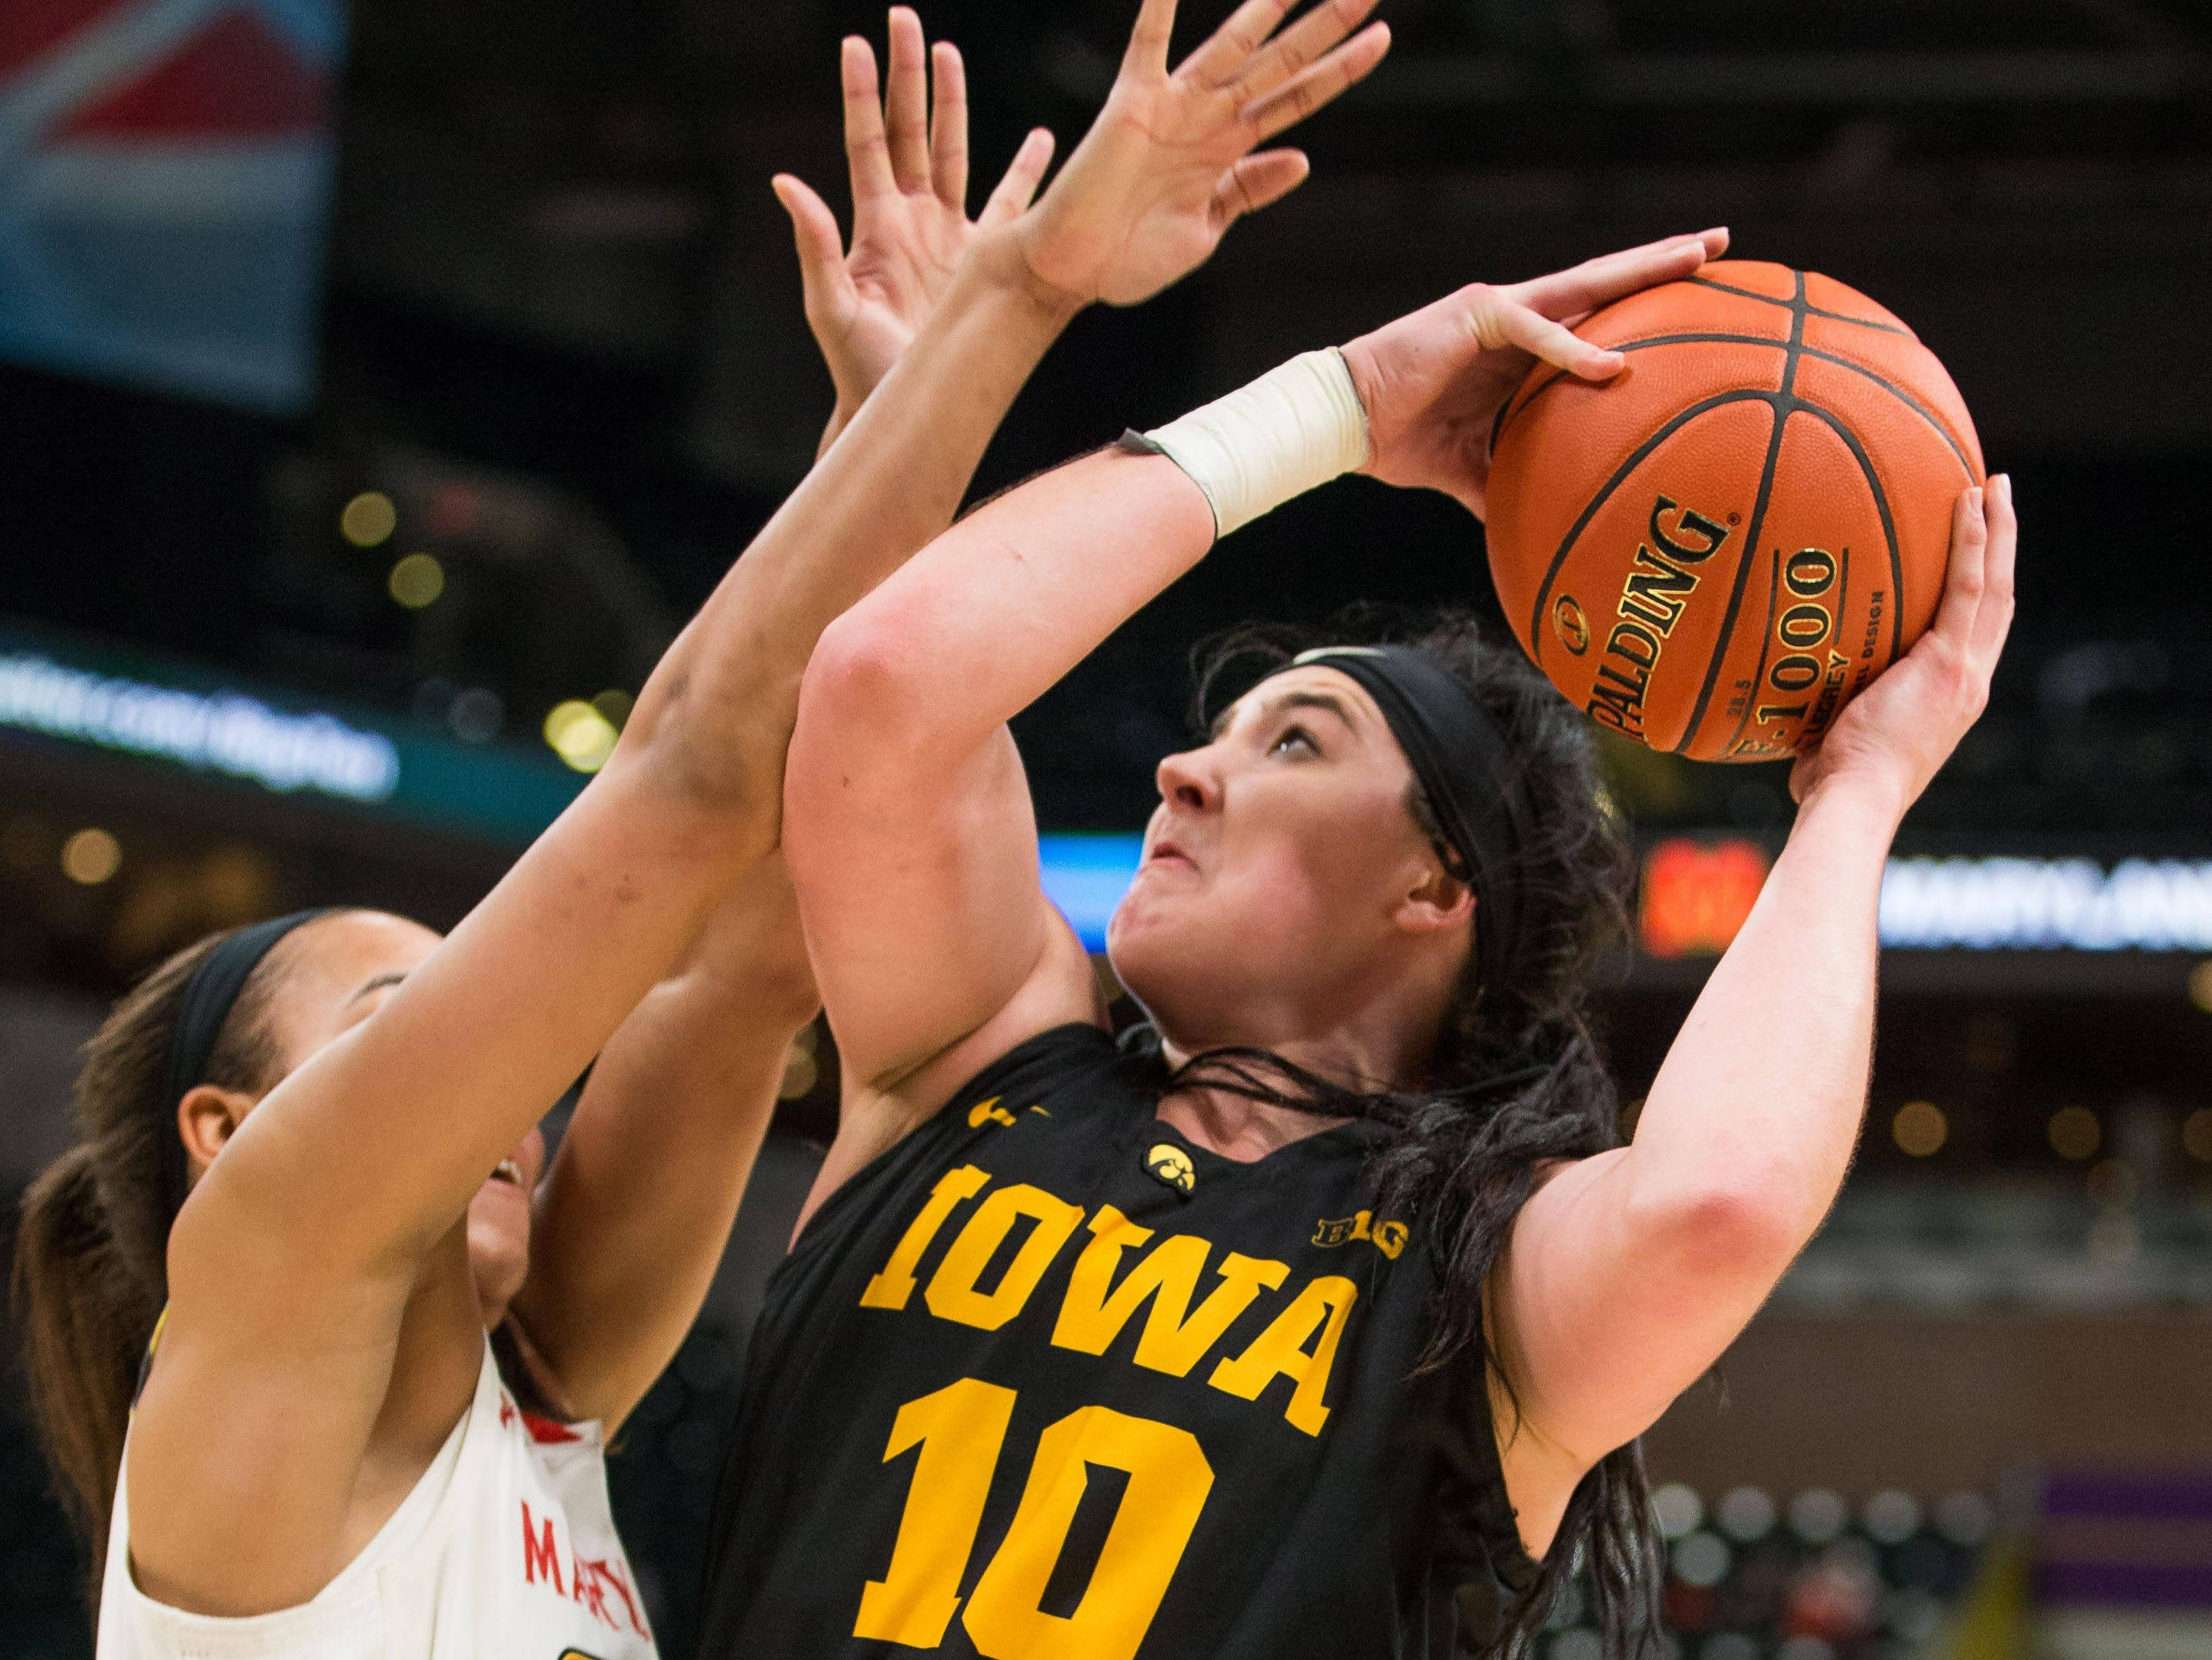 Iowa Hawkeyes forward Megan Gustafson (10) shoots the ball over Maryland Terrapins forward Stephanie Jones (24) in the second half in the women's Big Ten Conference Tournament at Bankers Life Fieldhouse.